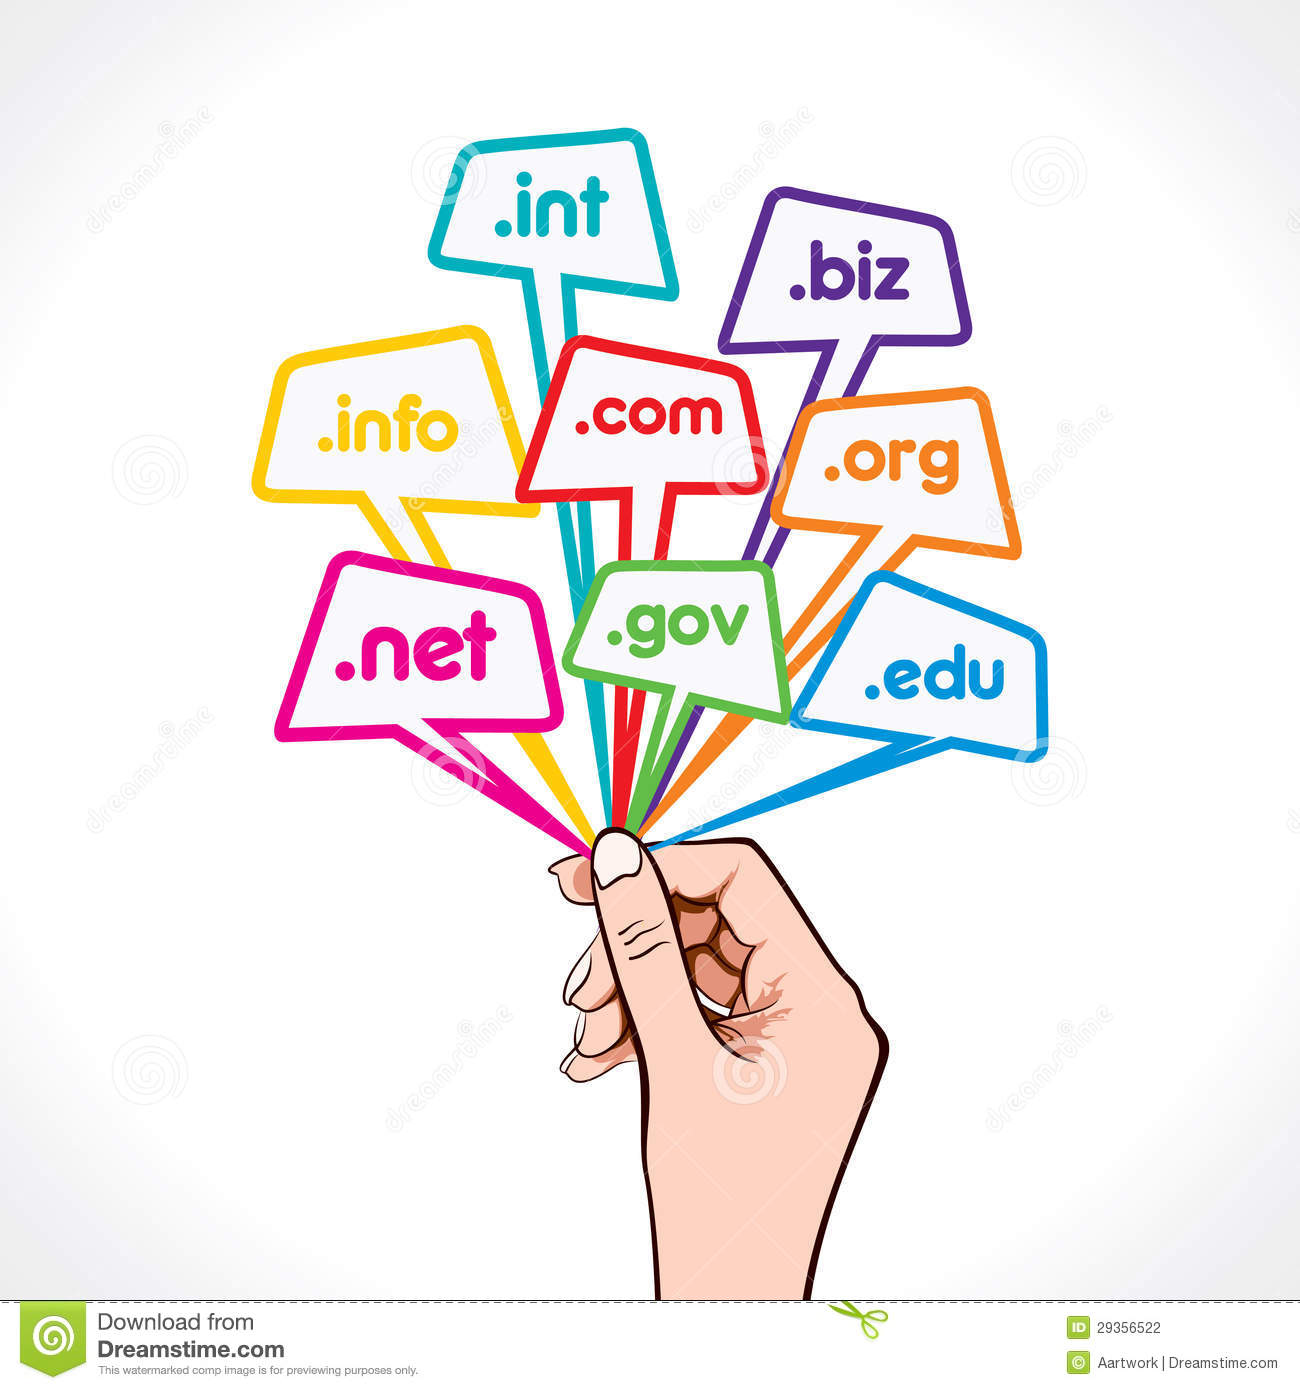 Domain name in hand